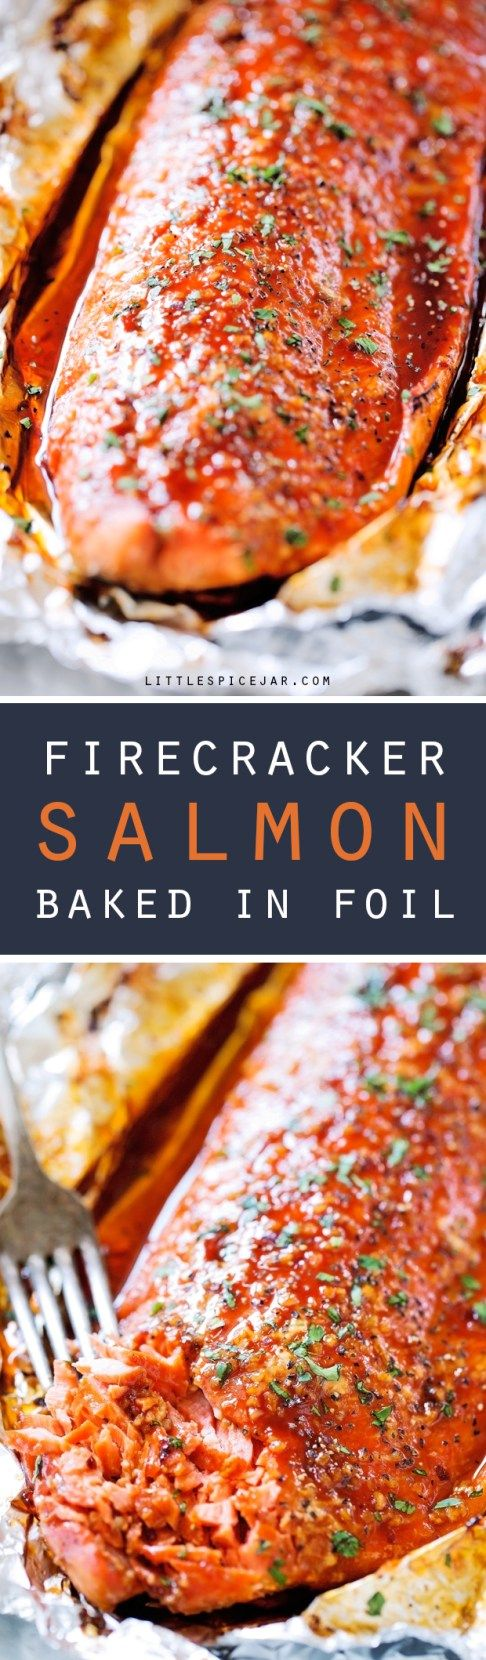 Firecracker Baked Salmon in Foil - An easy baked salmon recipe that takes just 30 minutes to make and is sure to be a crowd pleaser! #bakedsalmon #salmon #salmoninfoil | Littlespicejar.com